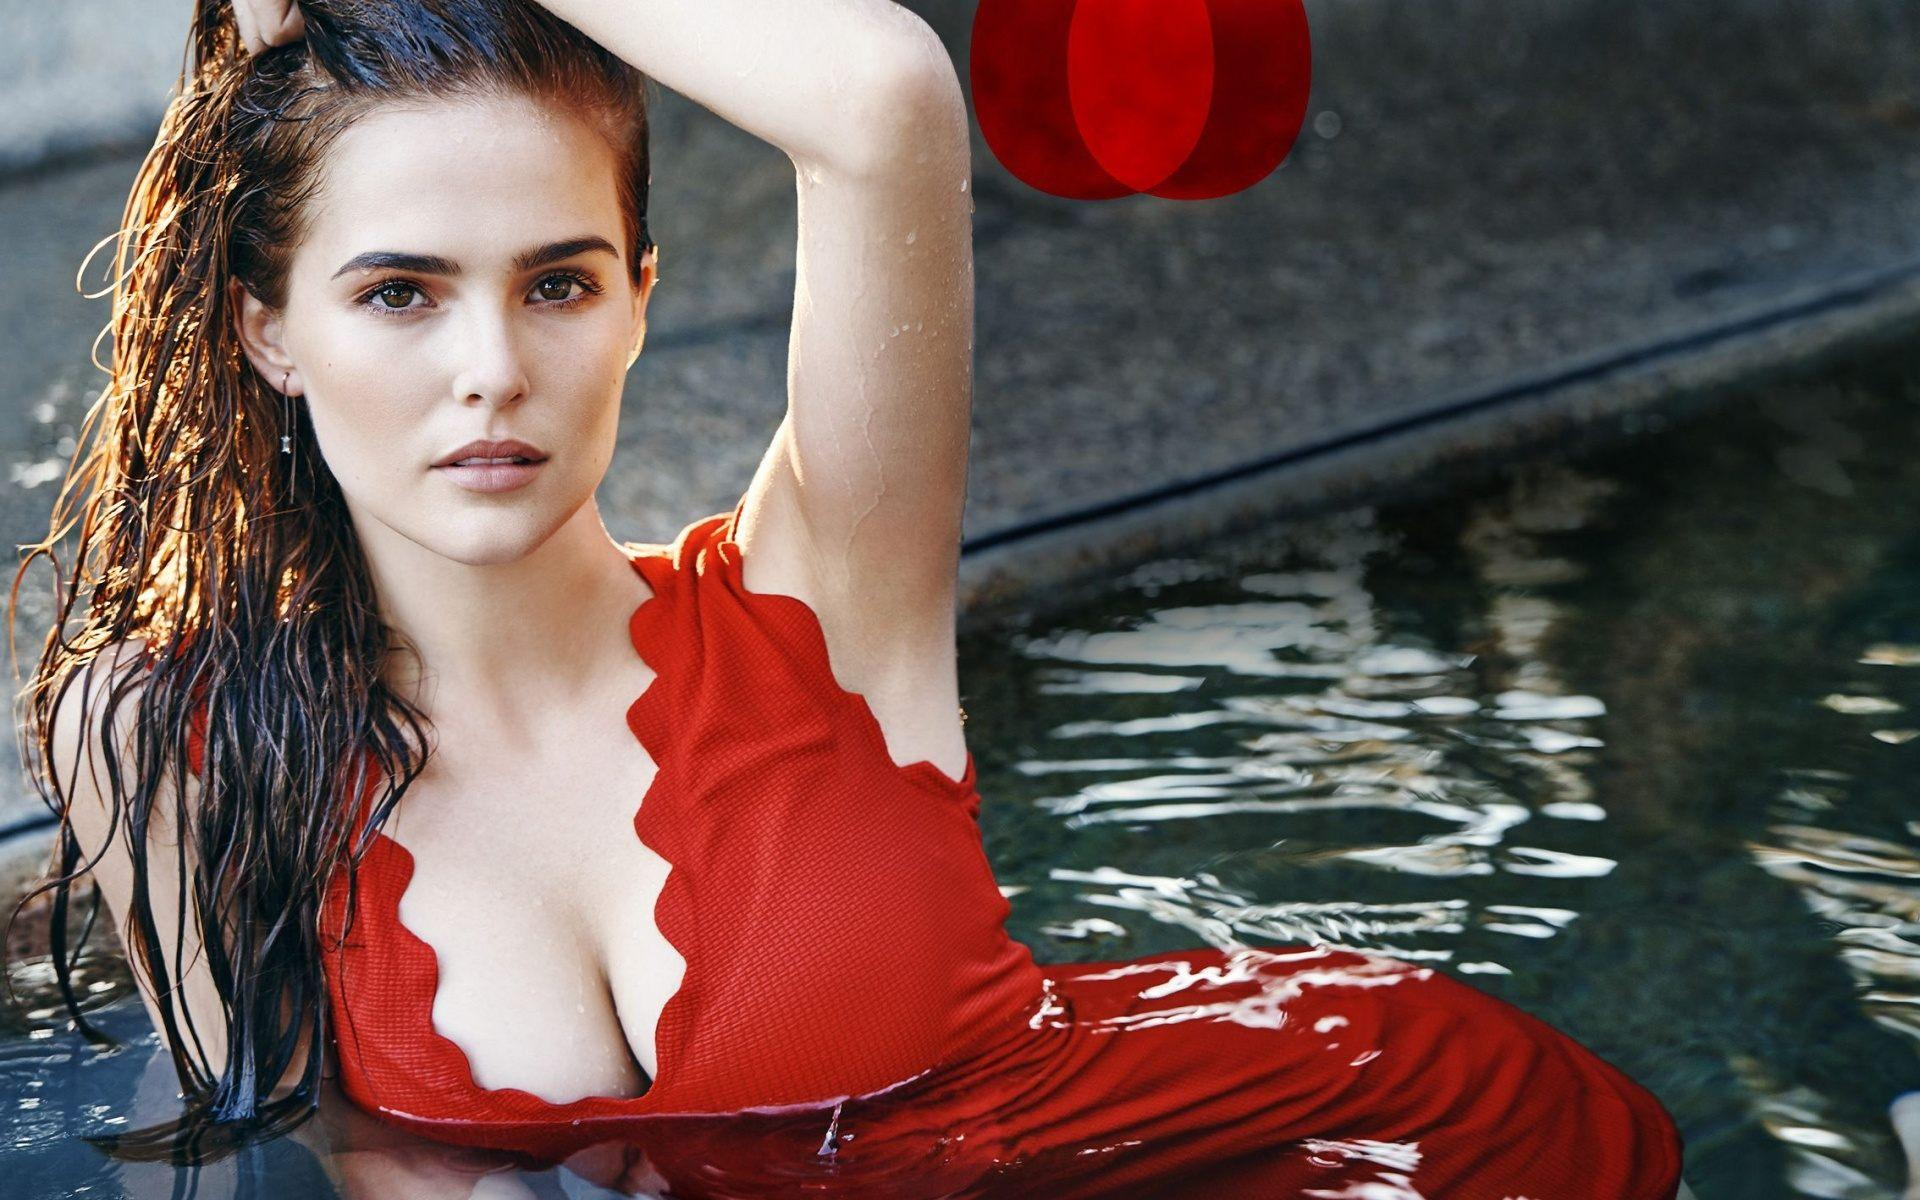 Car Logo Wallpapers For Mobile Zoey Deutch Hd Celebrities 4k Wallpapers Images